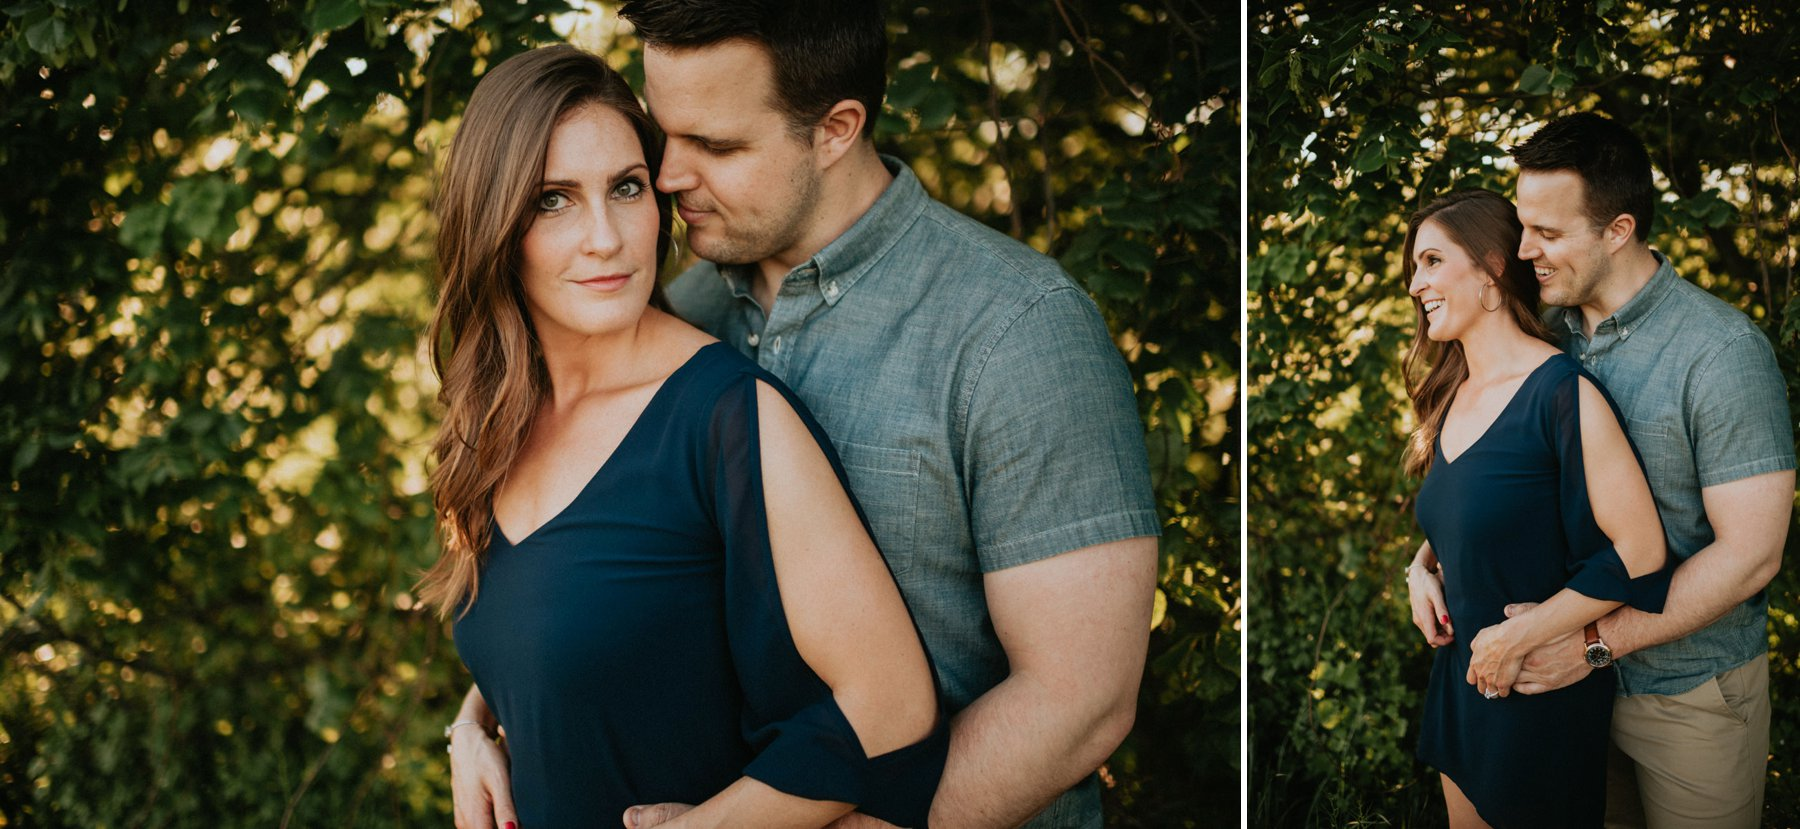 Newtown-square-engagement-session-19.jpg